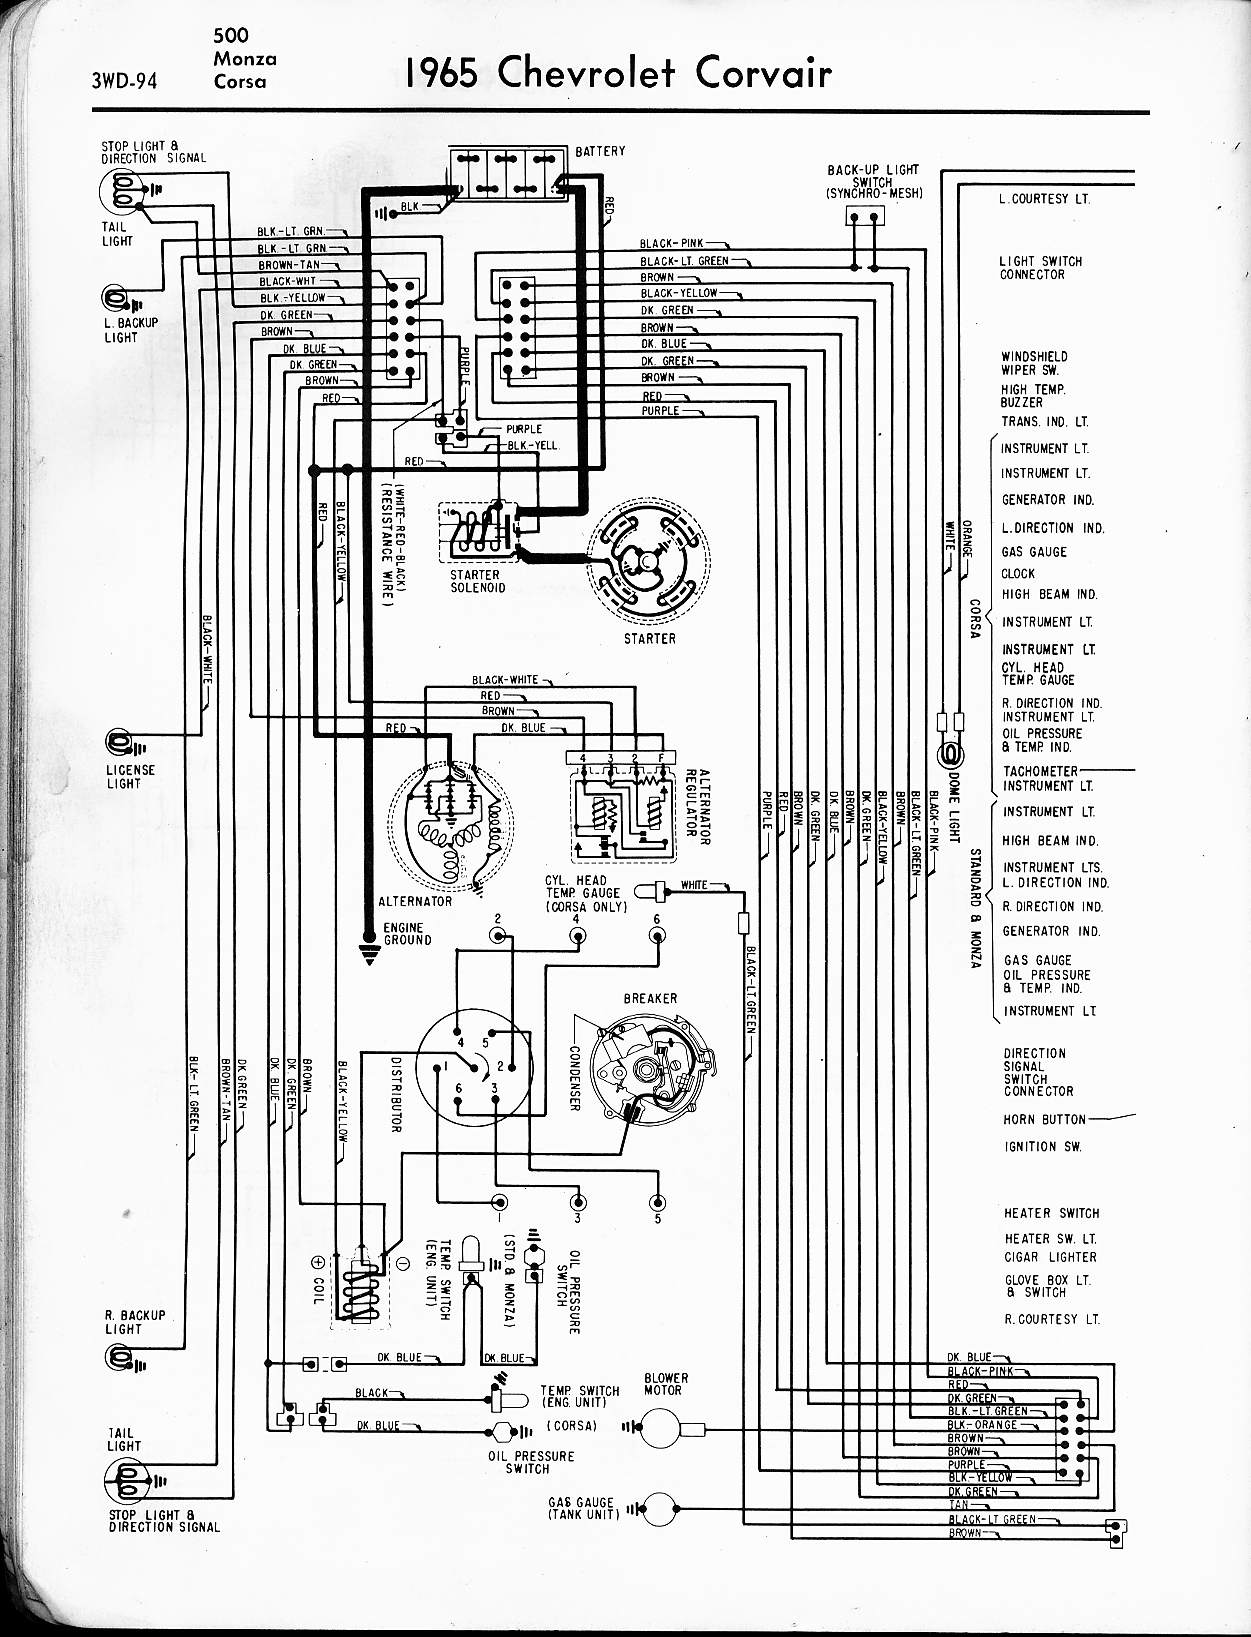 63 Corvair Wiring Diagram Great Design Of Image Vette 57 65 Chevy Diagrams Rh Oldcarmanualproject Com 1962 Ignition Air Conditioner